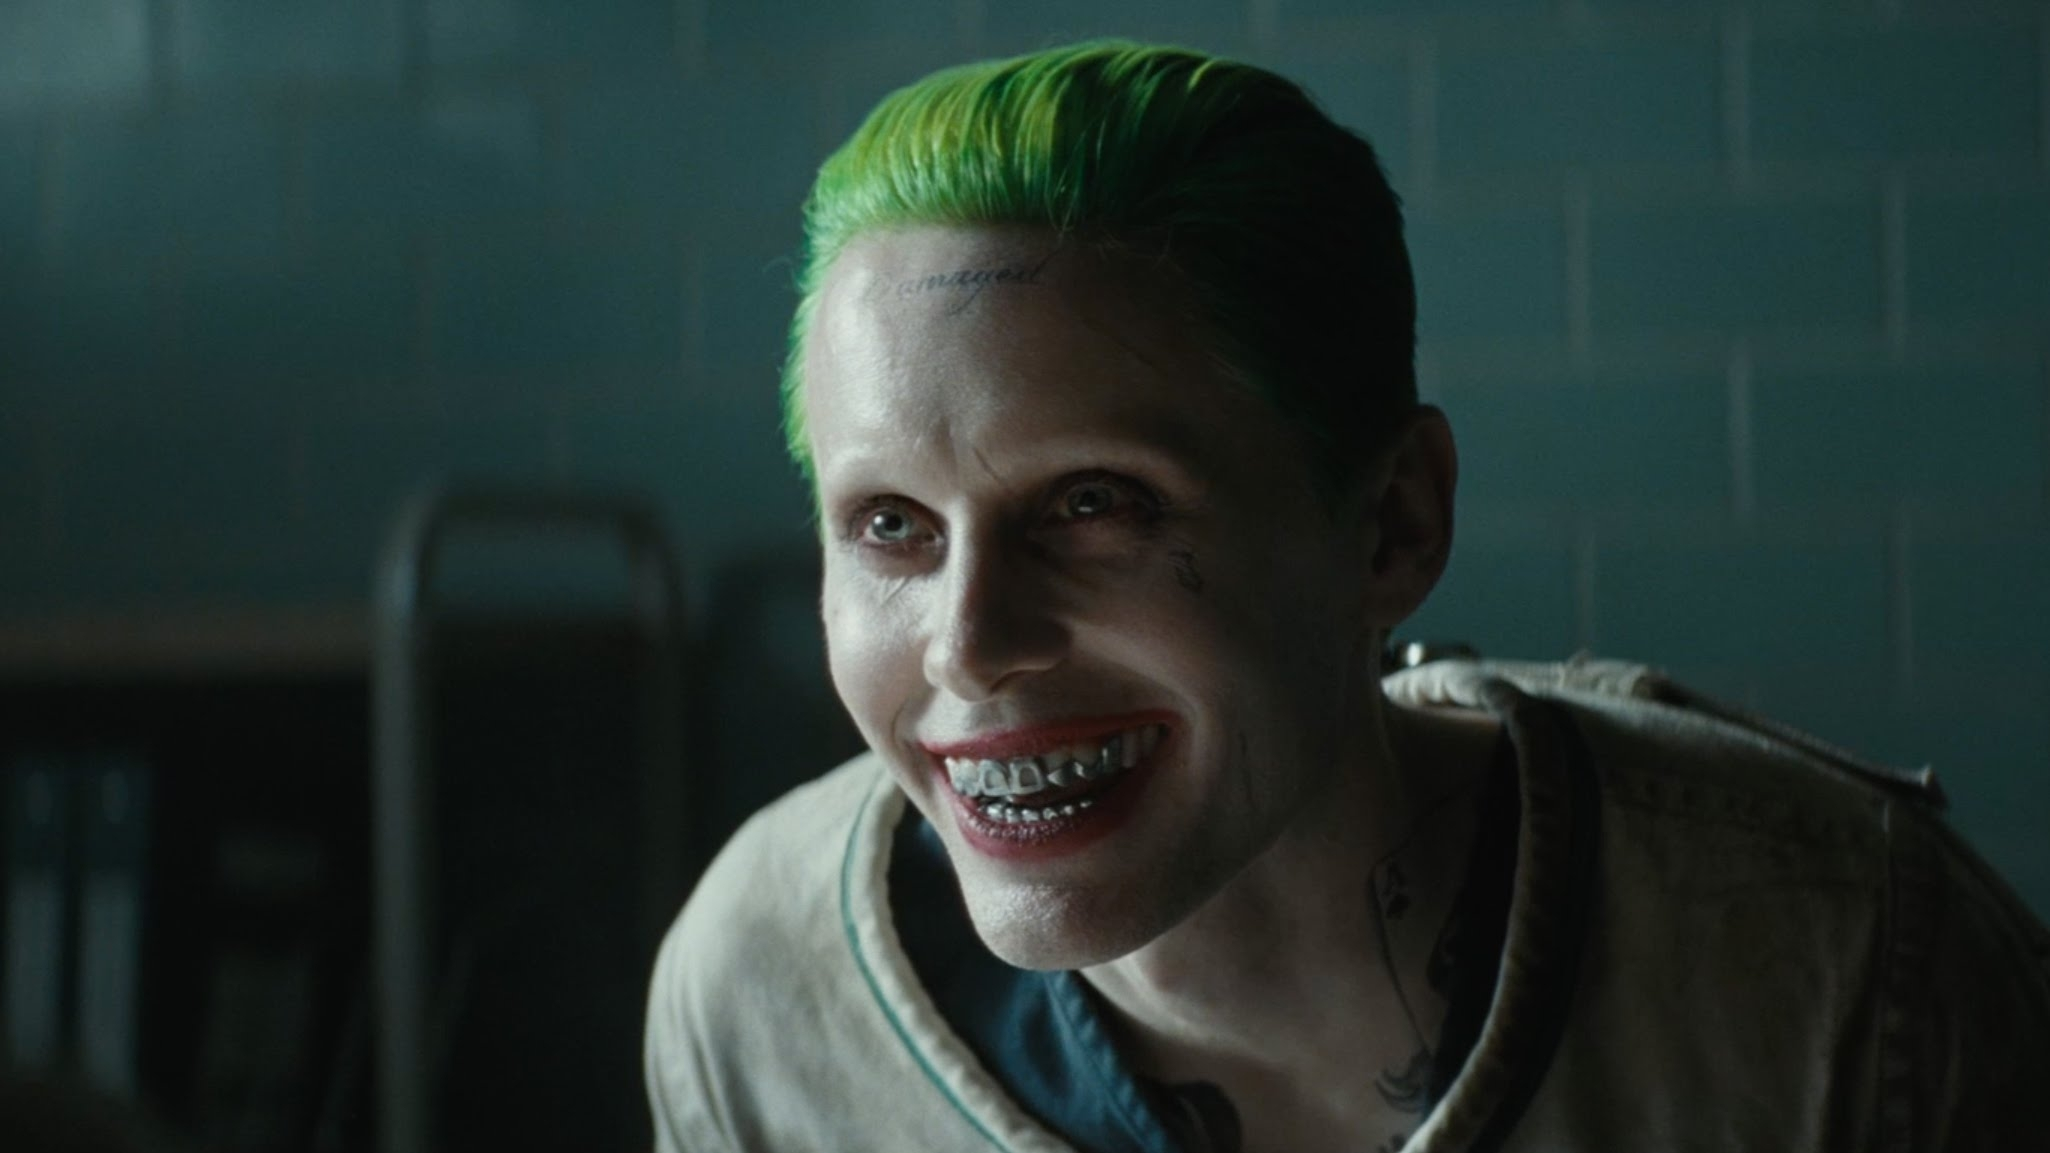 10 Latest Suicide Squad Joker Pictures FULL HD 1920×1080 For PC Desktop